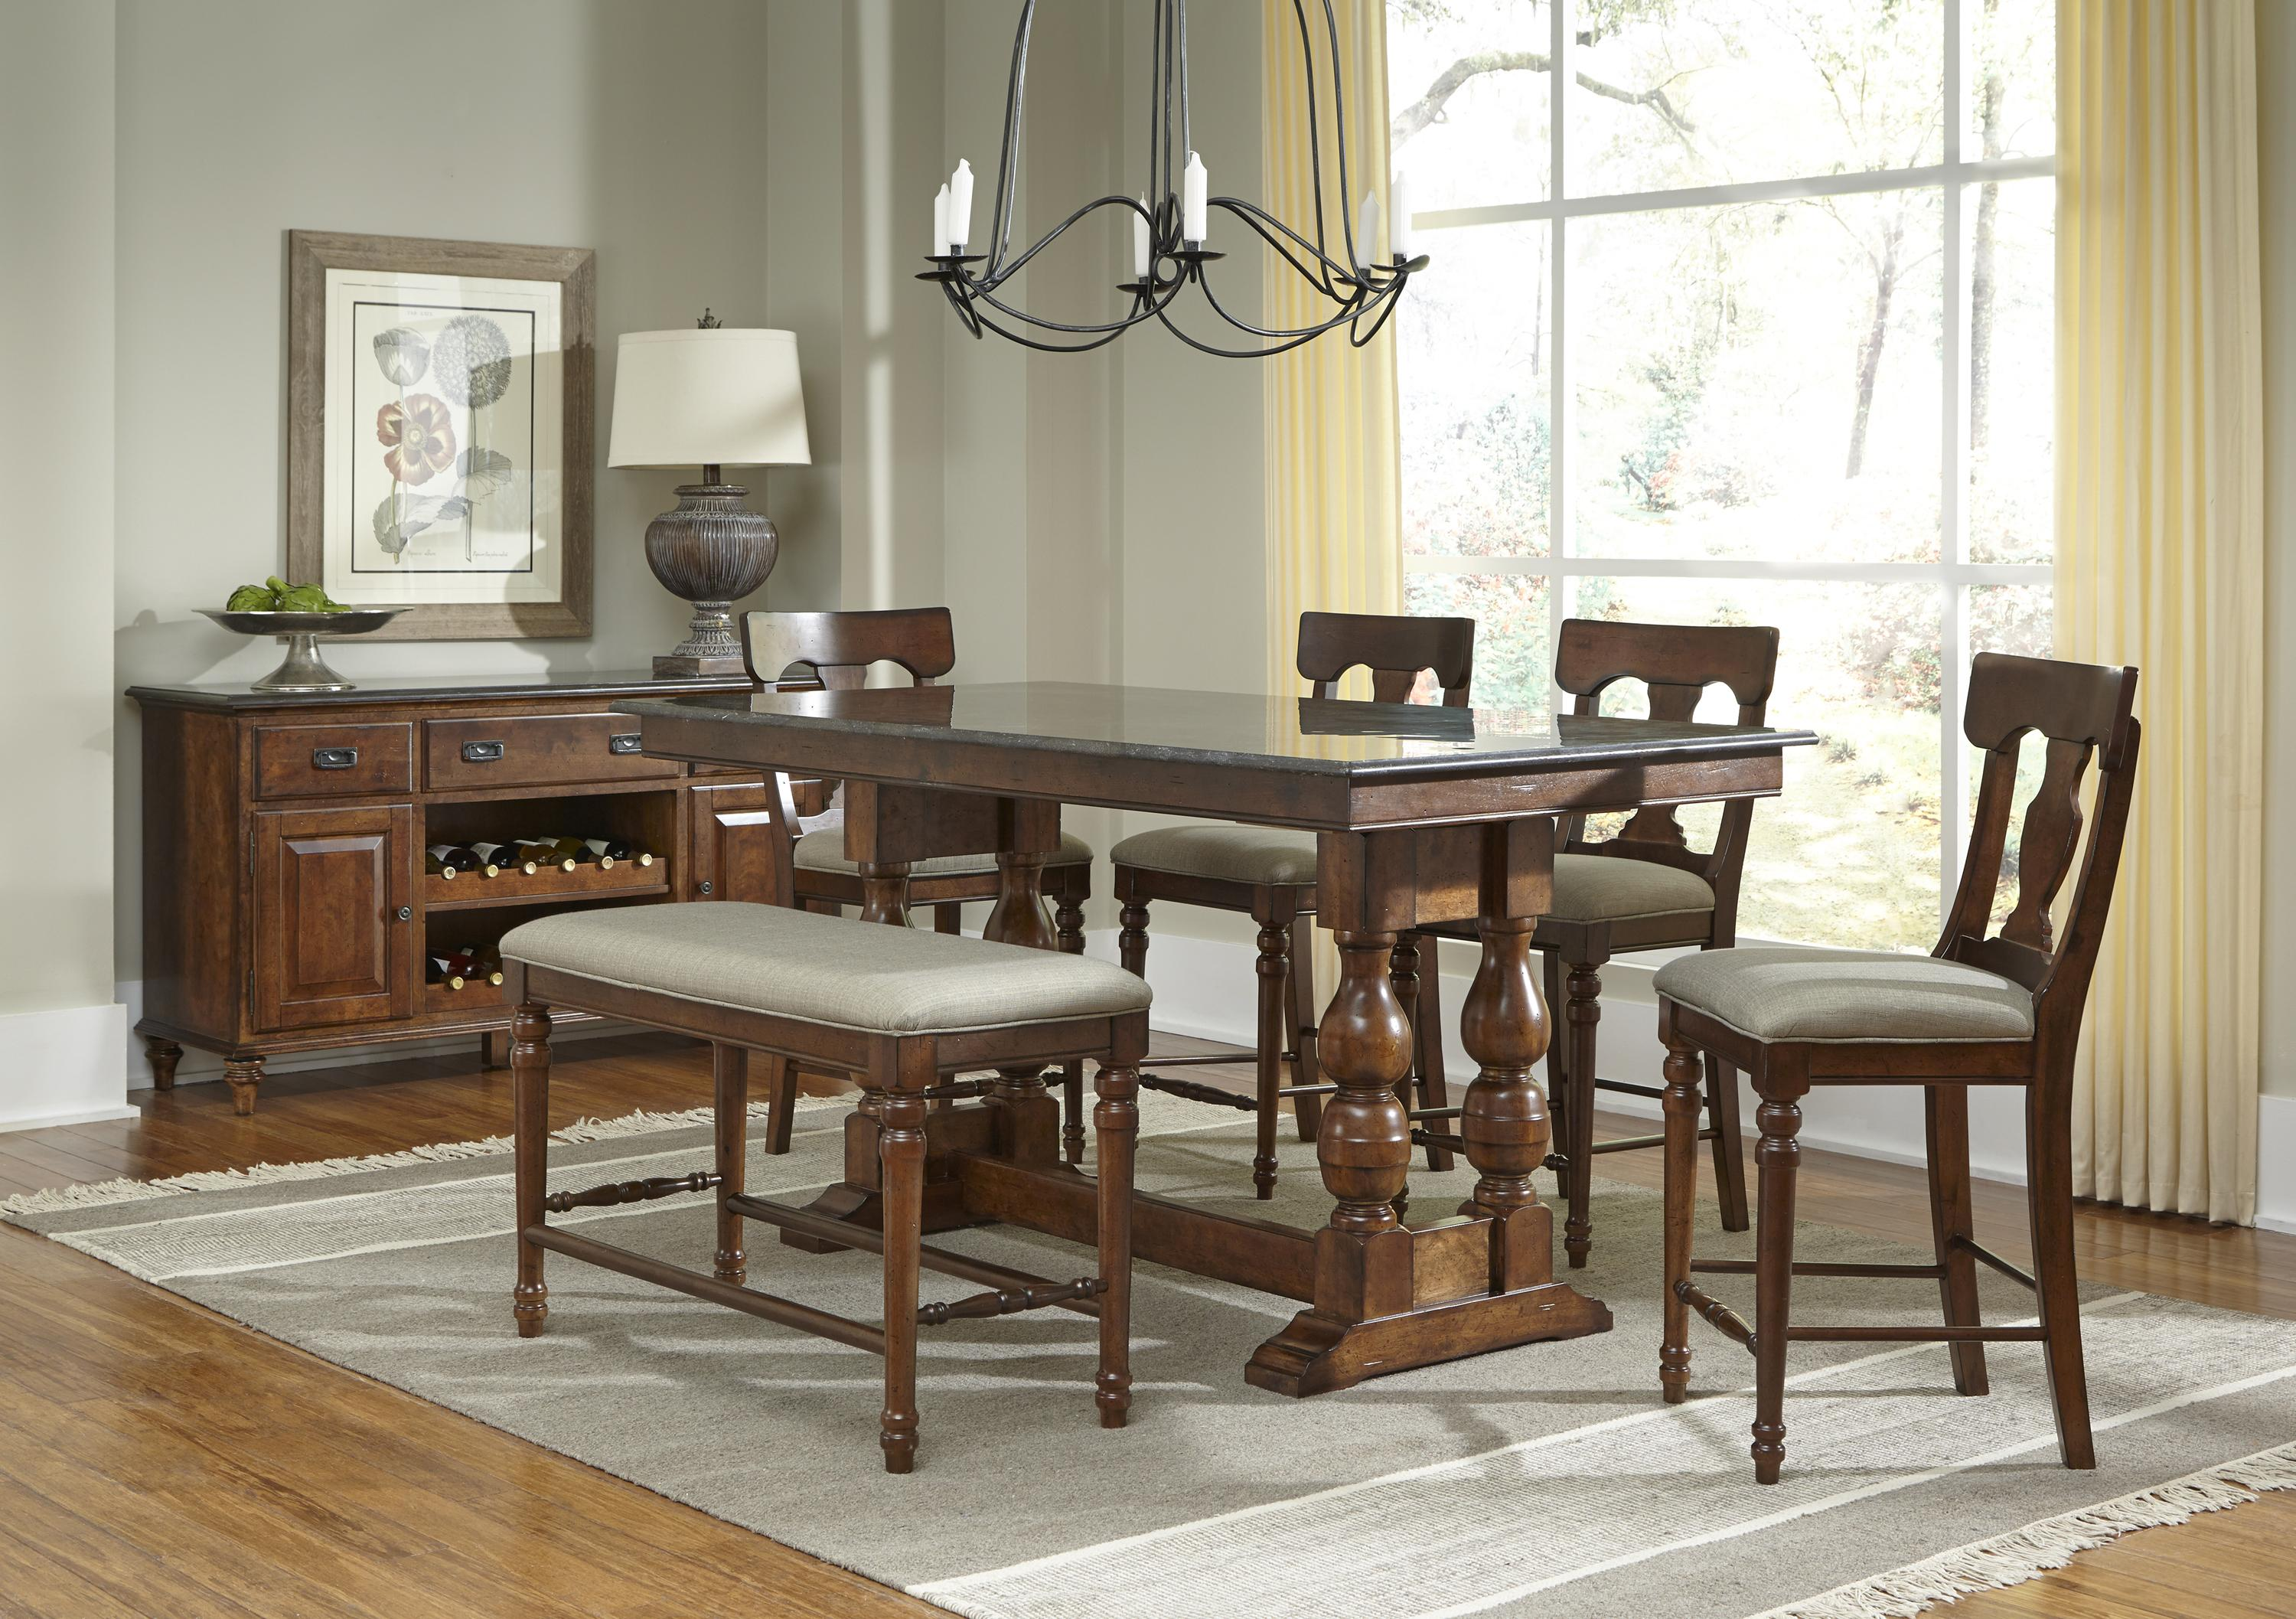 AAmerica Andover Park Dining Room Group - Item Number: ADV Dining Rroom Group 4